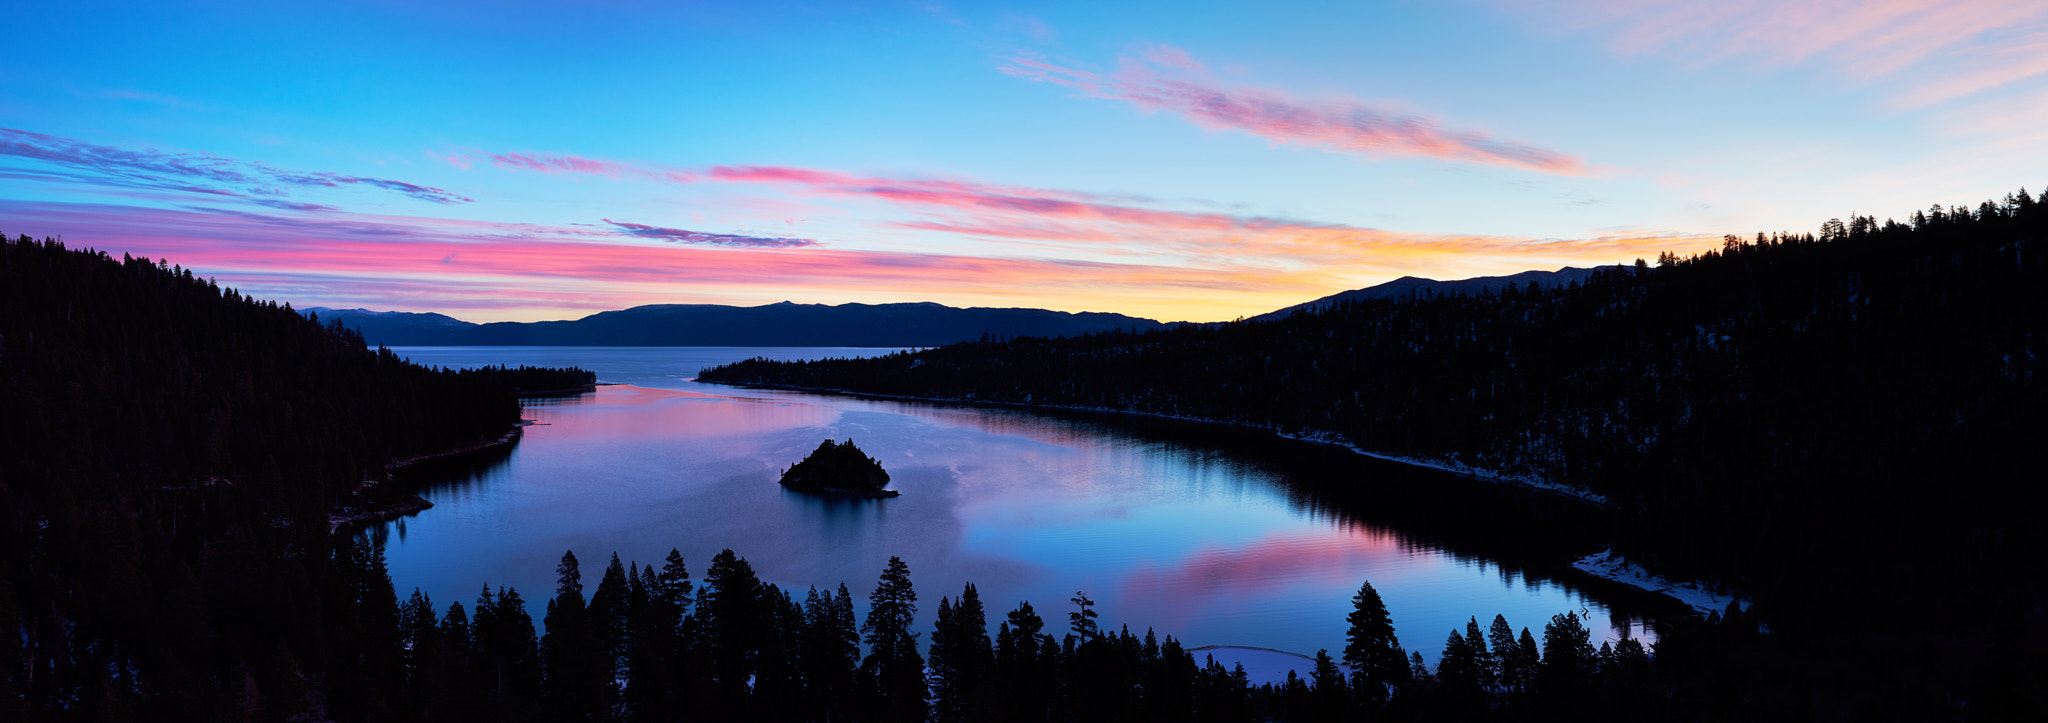 Photograph Twilight on Emerald Bay by Tim Peare on 500px